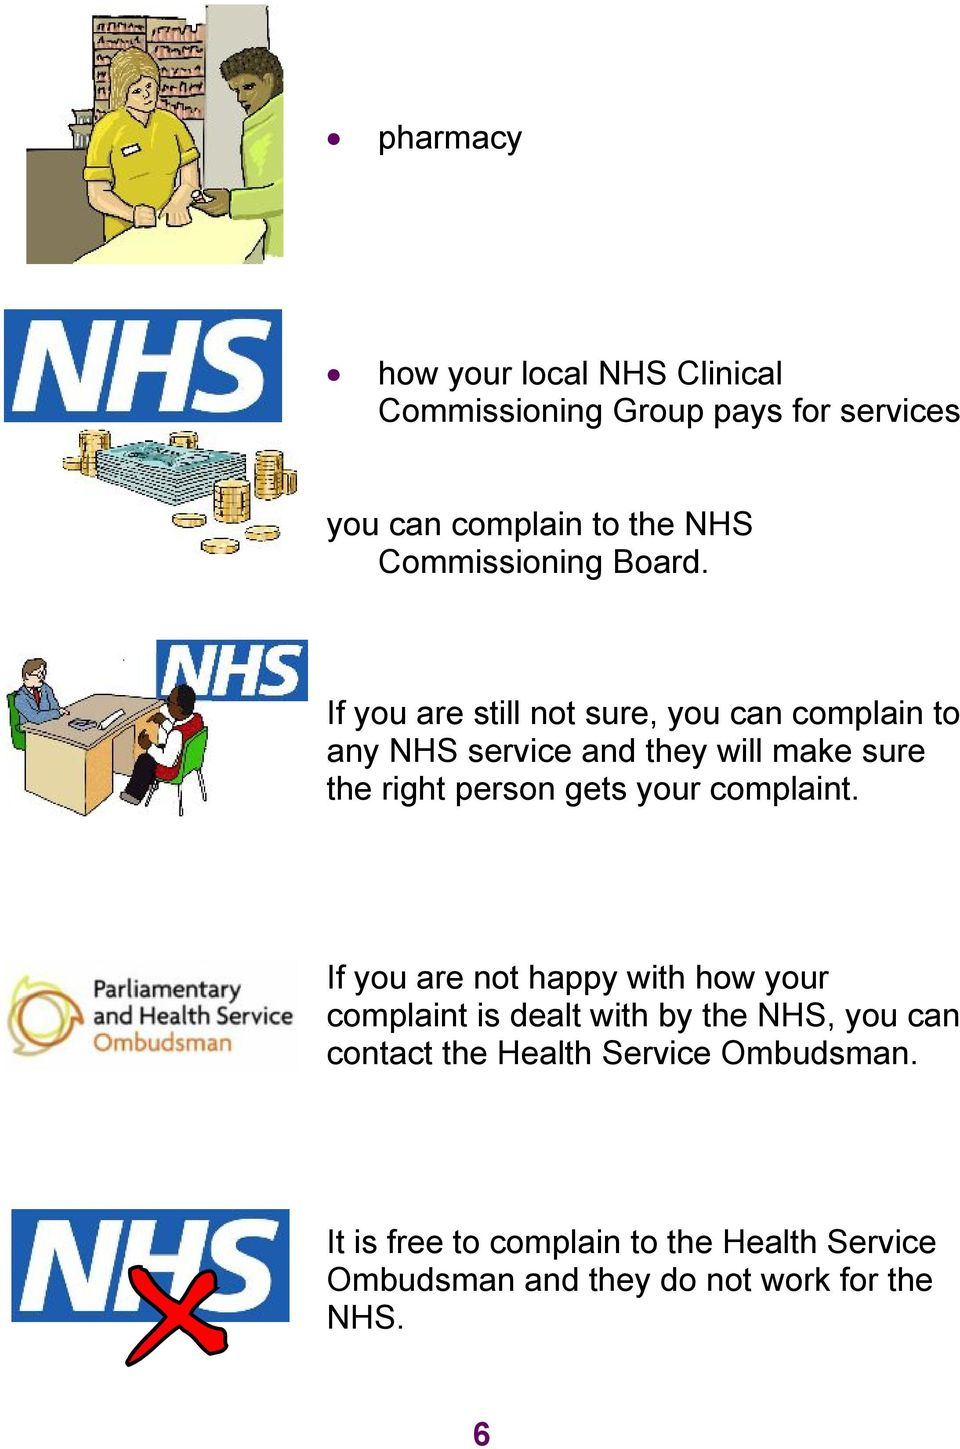 If you are still not sure, you can complain to any NHS service and they will make sure the right person gets your